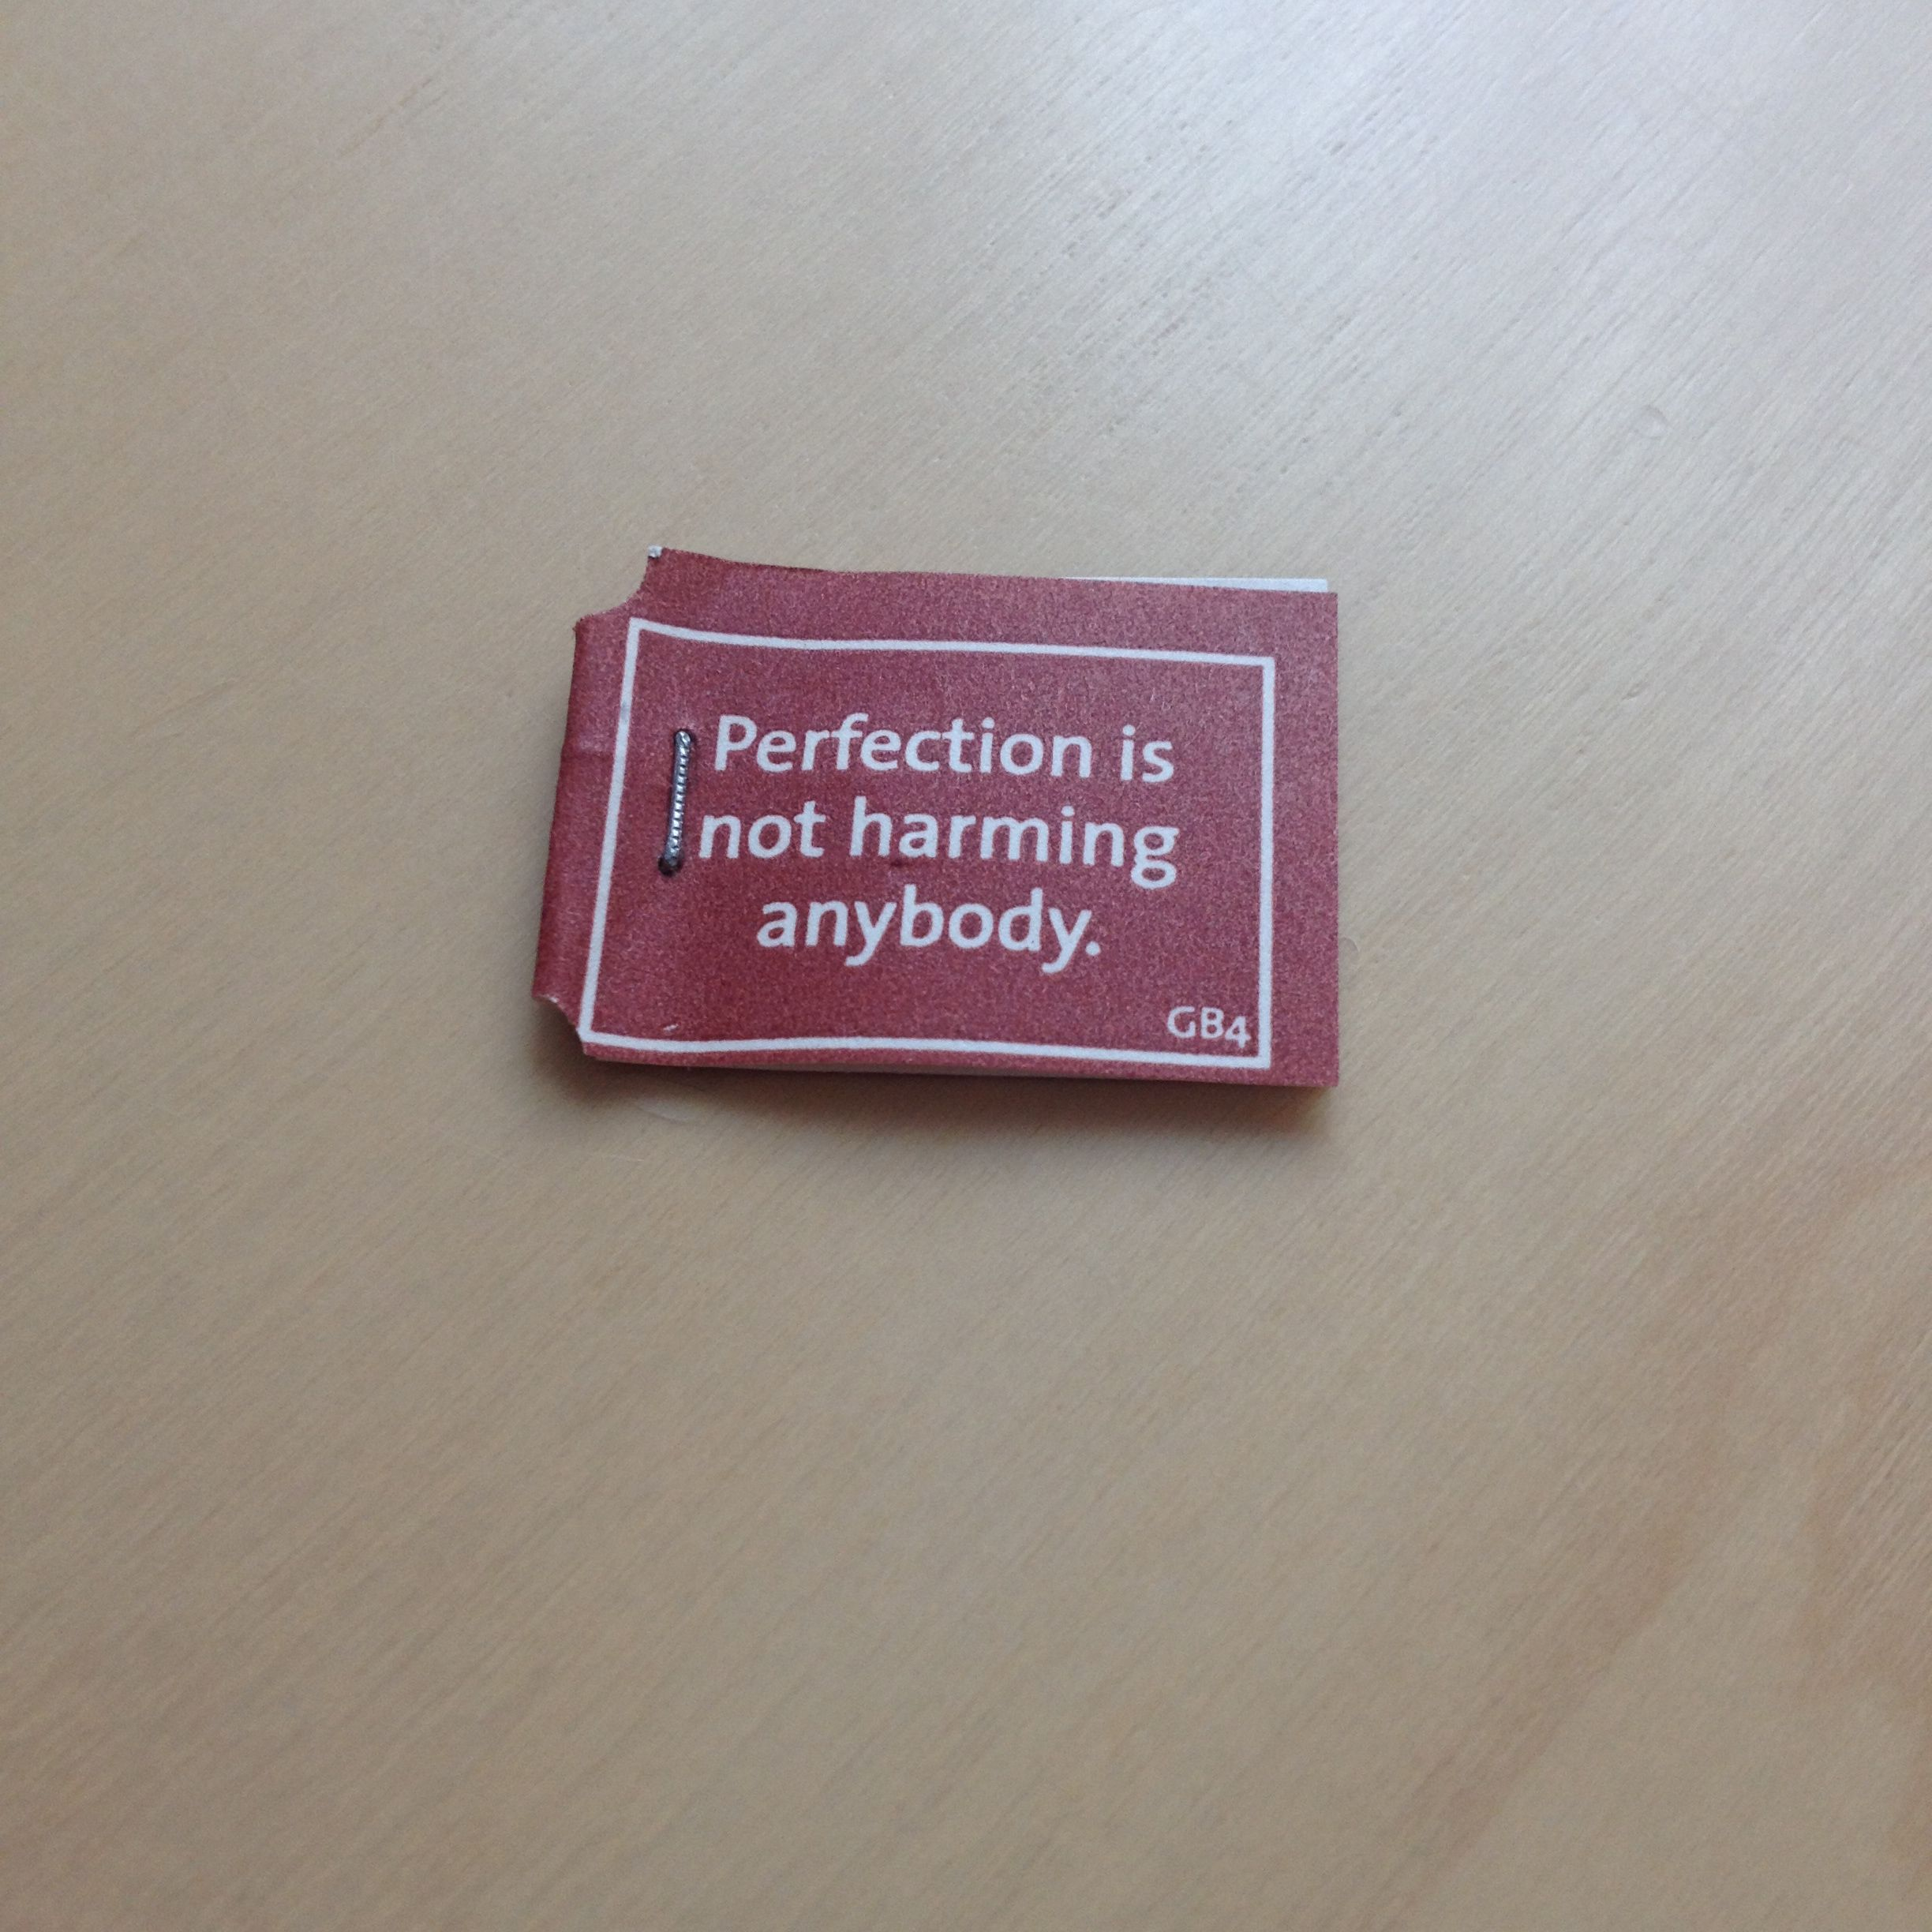 Perfection is not harming anybody.